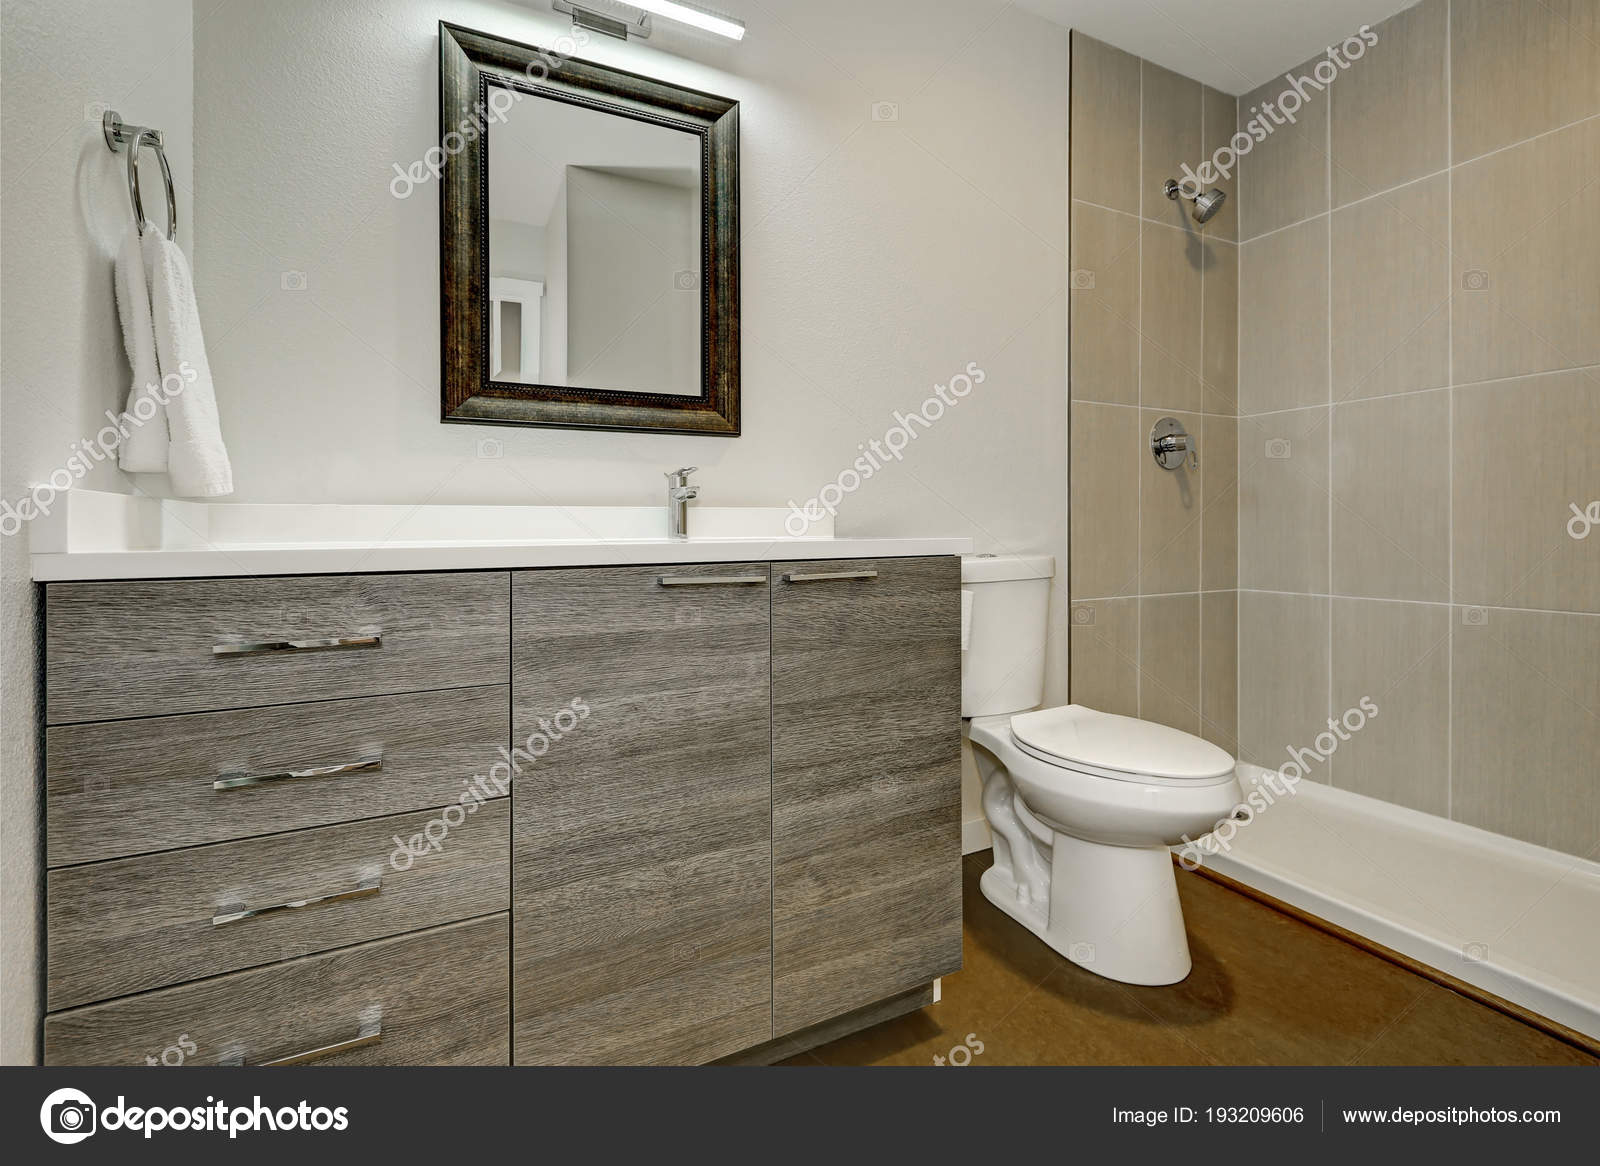 https://st3.depositphotos.com/1041088/19320/i/1600/depositphotos_193209606-stock-photo-new-grey-bathroom-interior-design.jpg